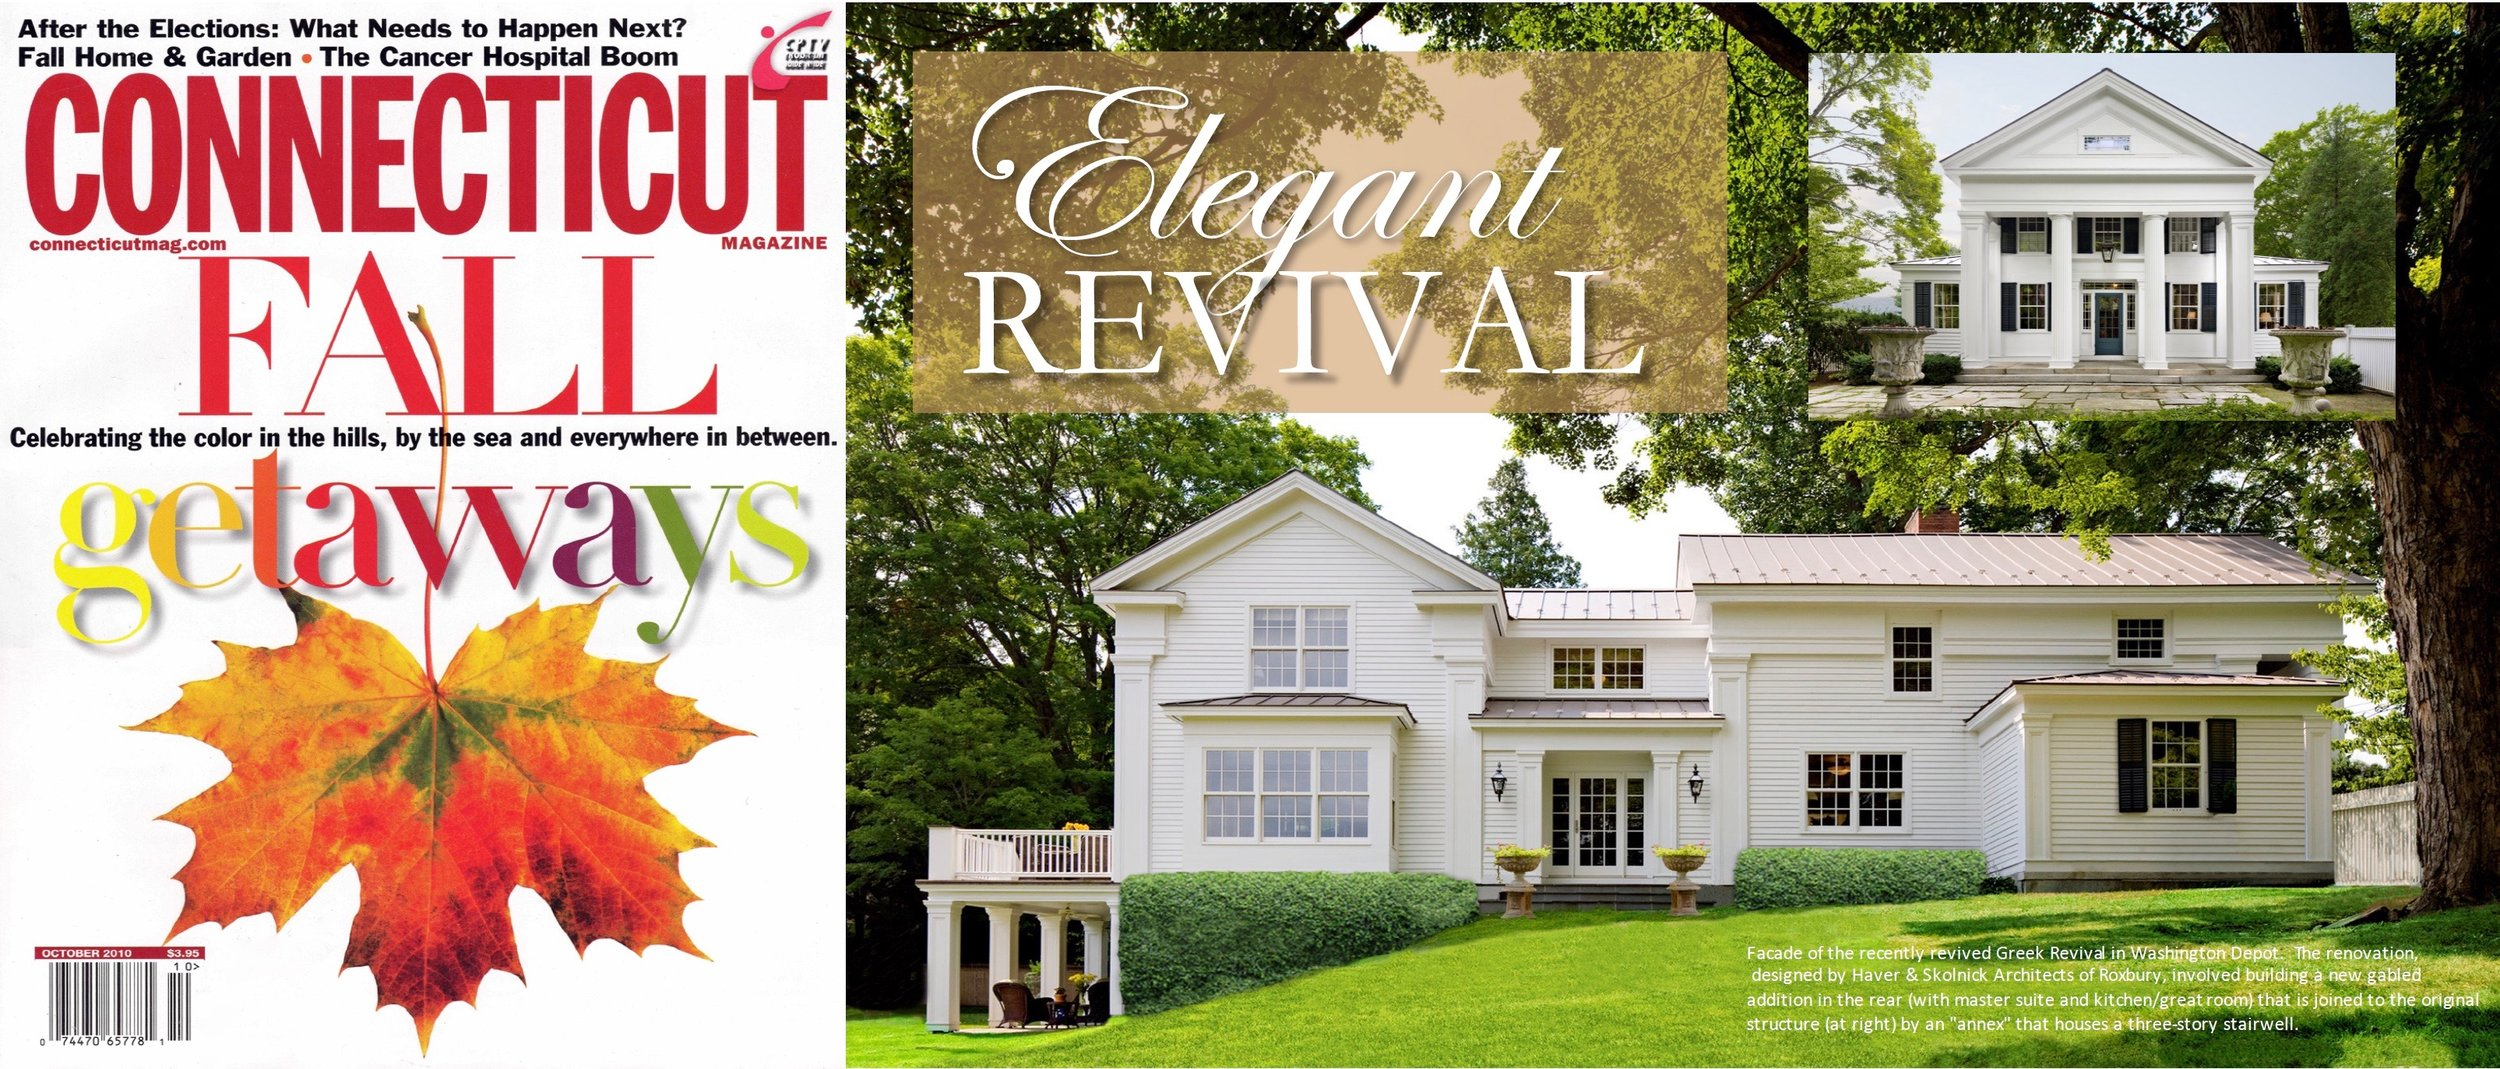 - Greek Revival Home as featured in CONNECTICUT MAGAZINE.